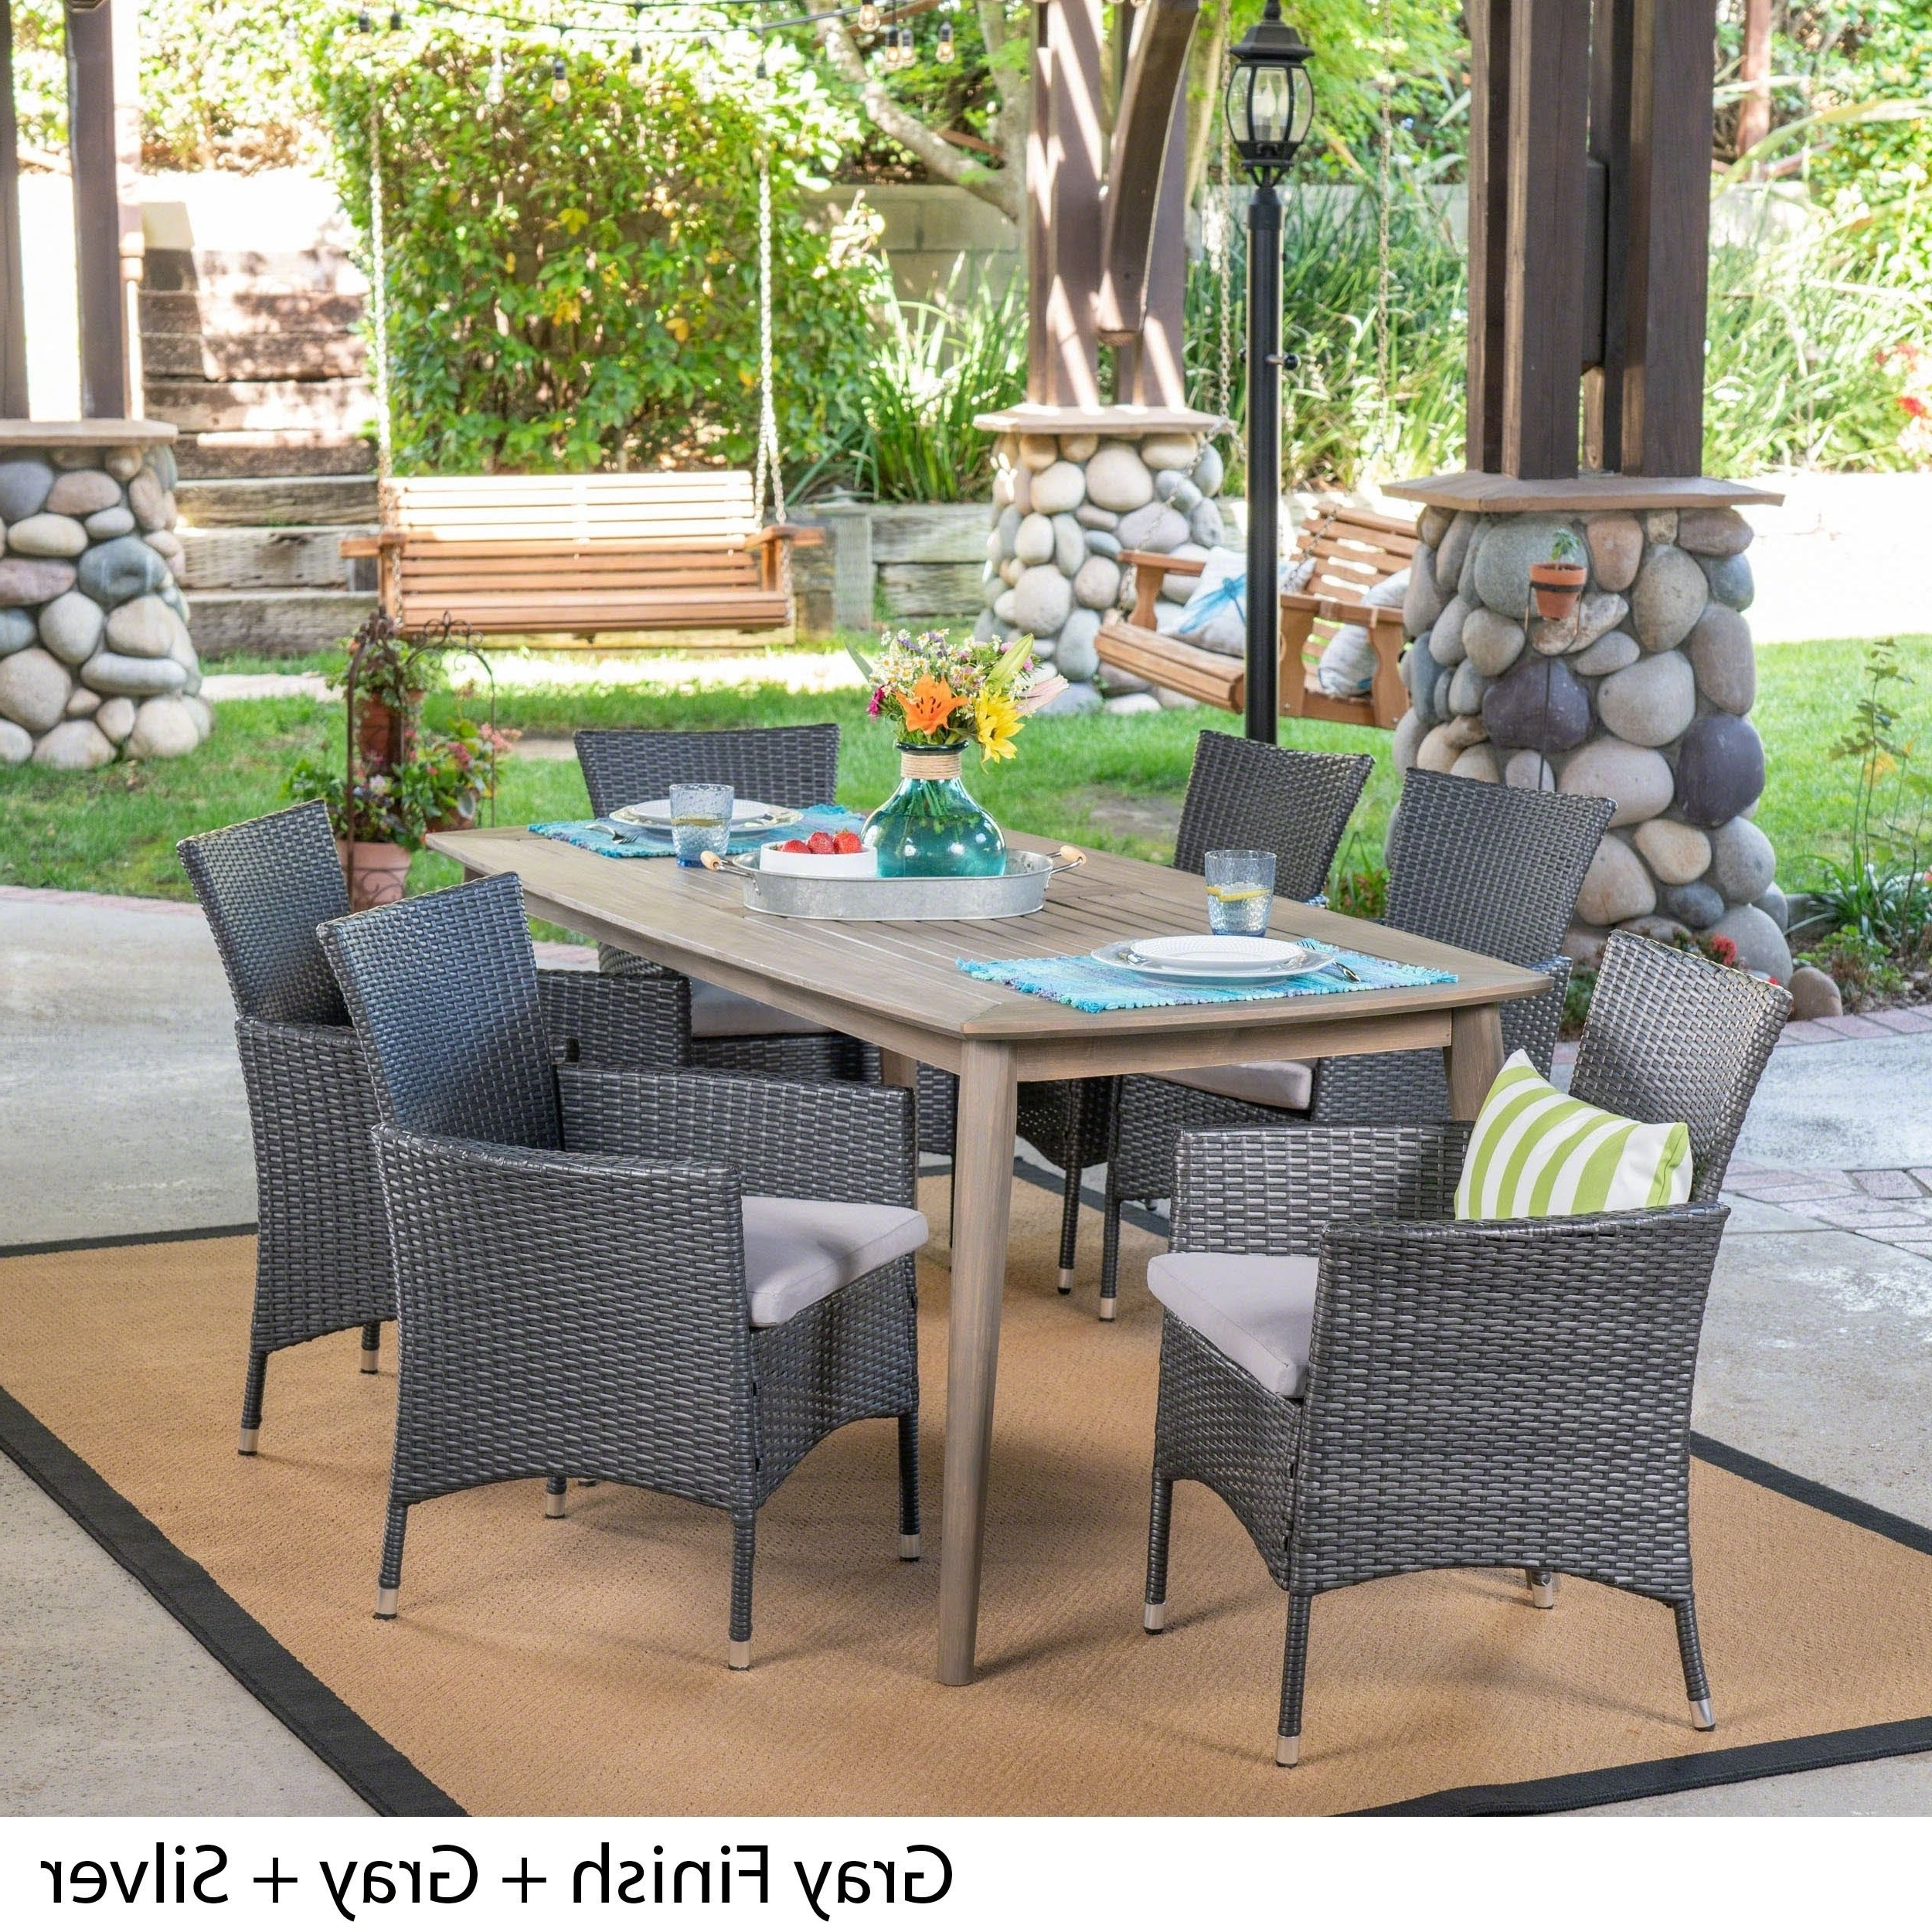 Most Recent Shop Jaxon Outdoor 7 Piece Multibrown Pe Wicker Dining Set With For Jaxon 7 Piece Rectangle Dining Sets With Upholstered Chairs (View 11 of 25)